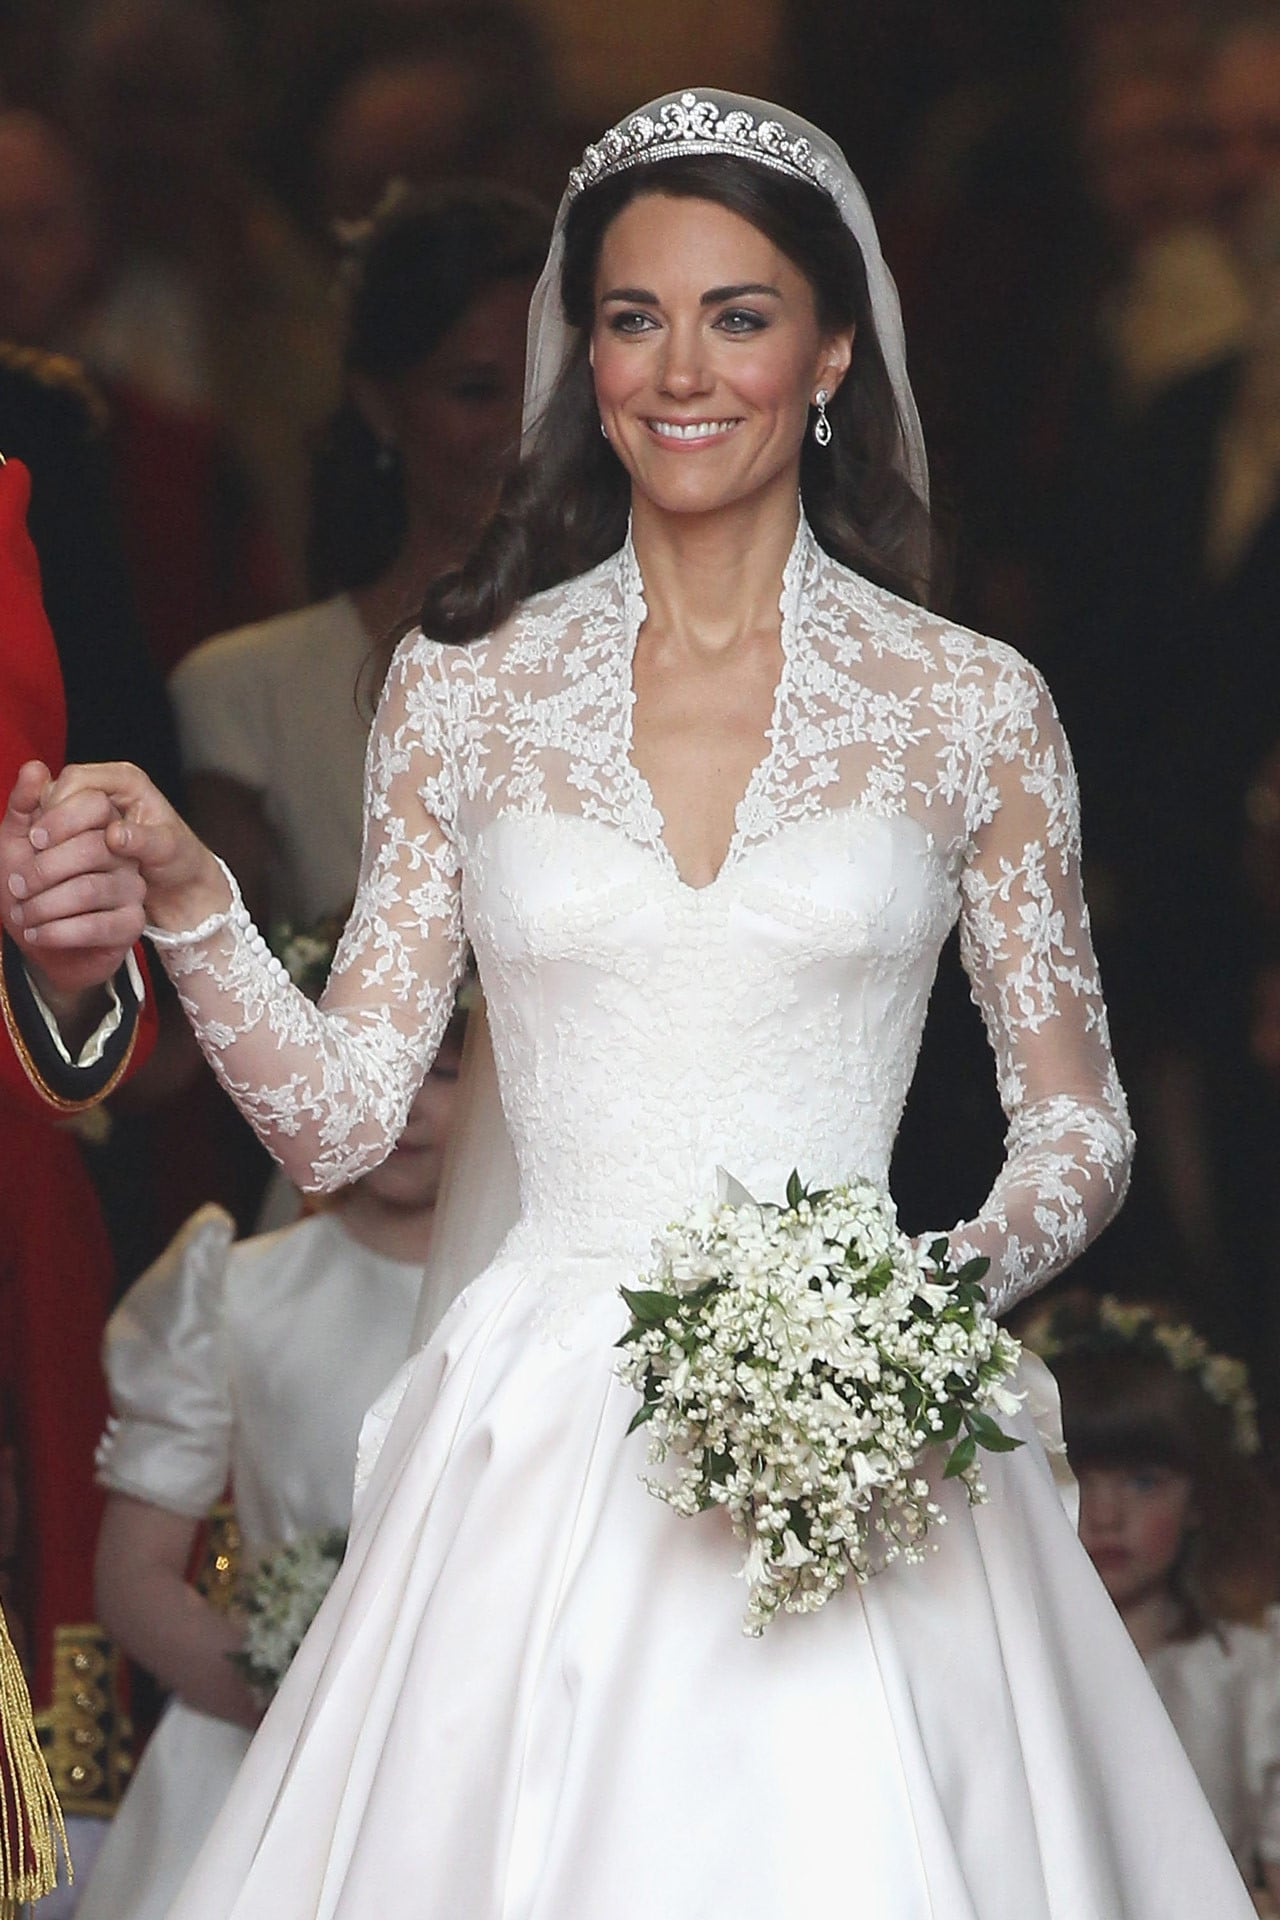 Kate Middletons Wedding Dresses.H M Selling Kate Middleton S Wedding Dress For 300 Vogue